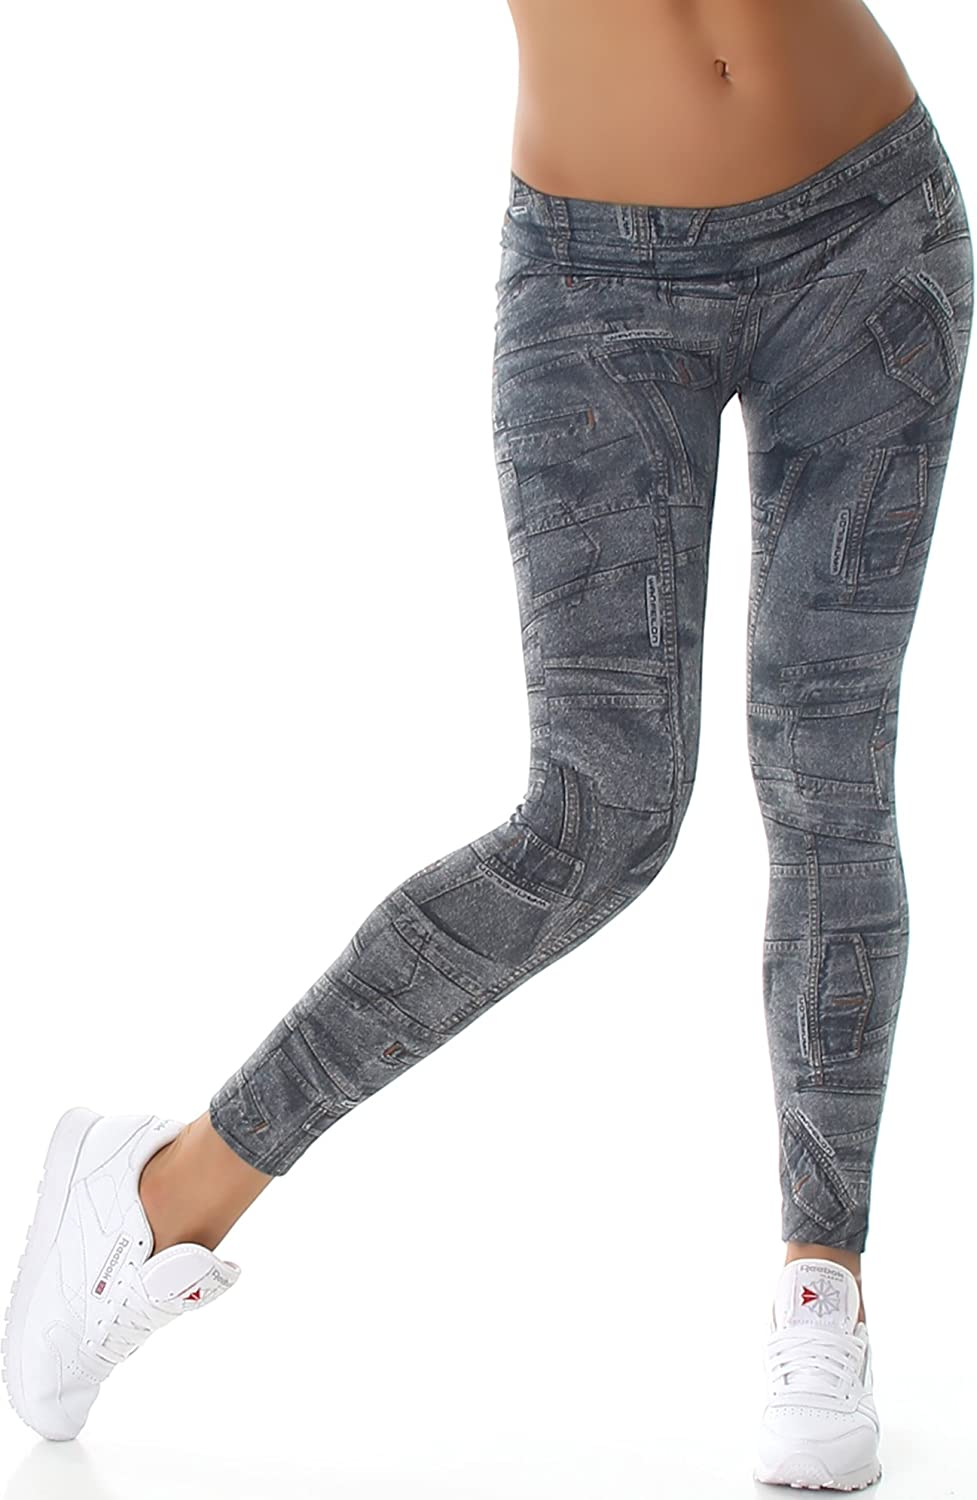 Kendindza Damen Thermo-Leggings Jeans-Look gef/üttert mit Innen-Fleece Basic Blickdicht